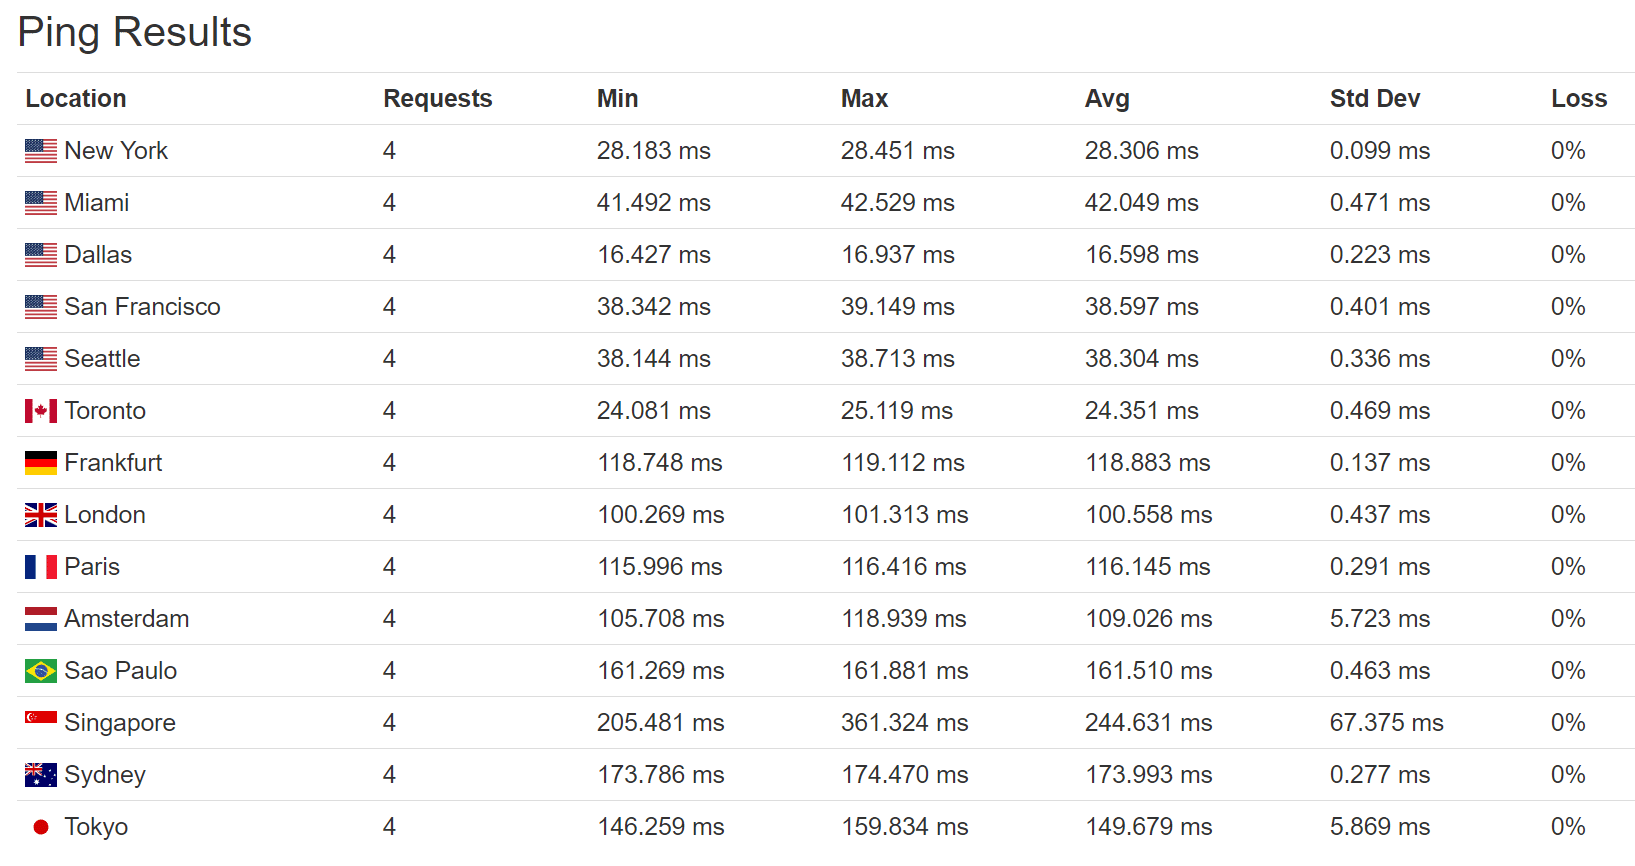 Ping times perf1